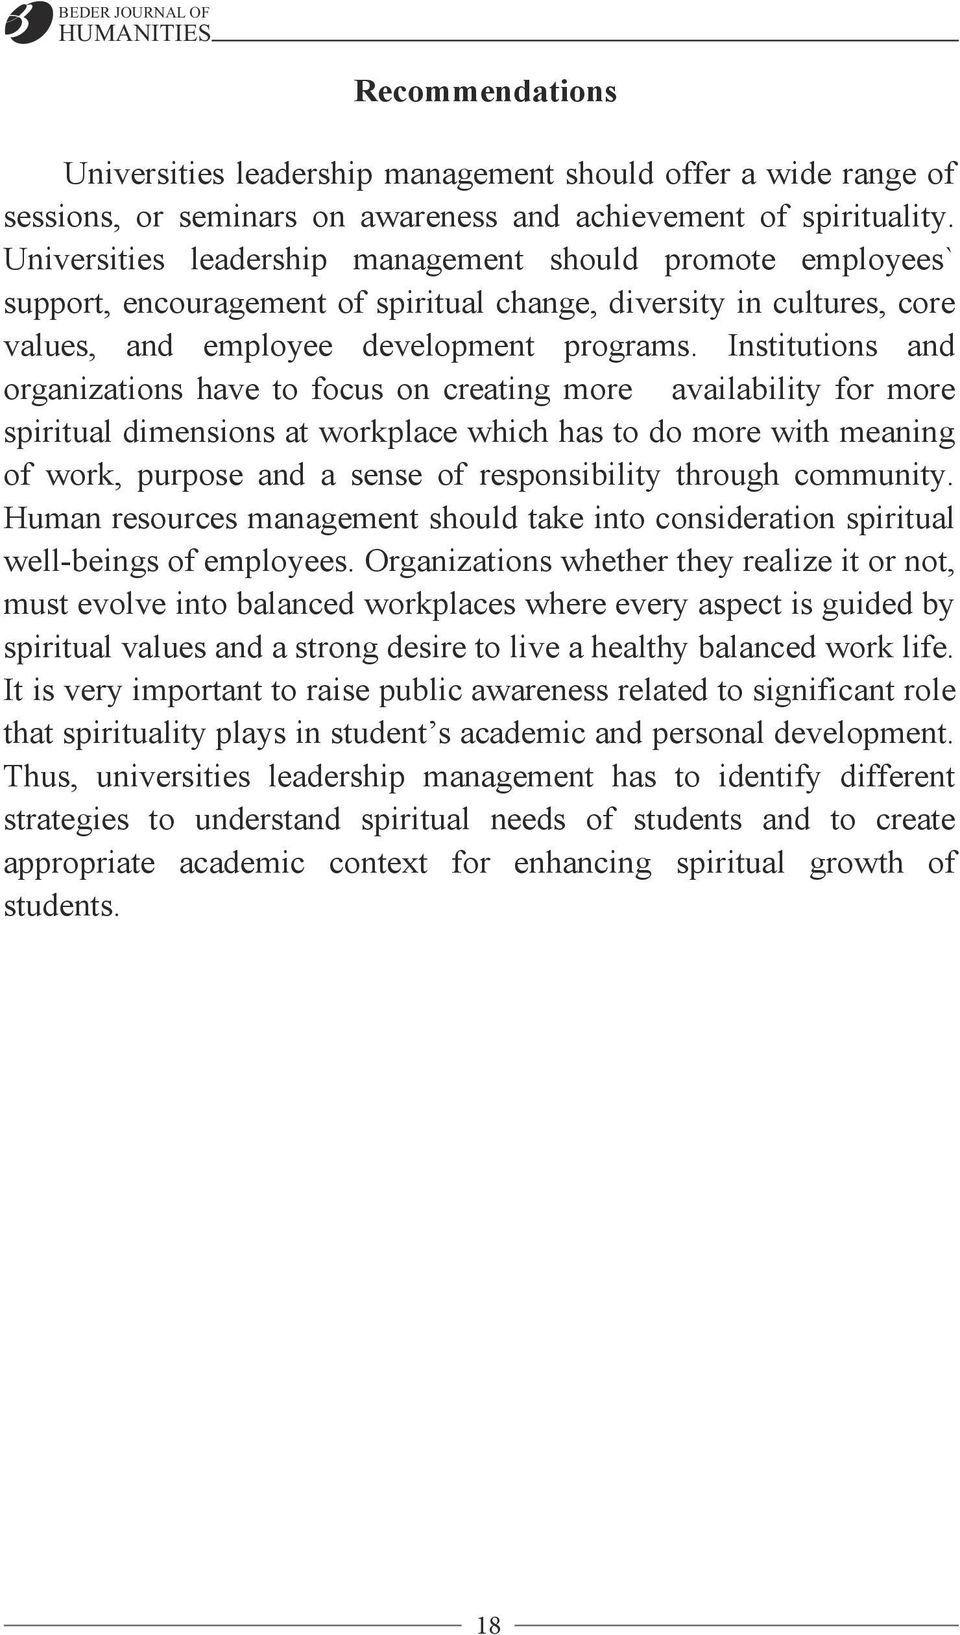 Institutions and organizations have to focus on creating more availability for more spiritual dimensions at workplace which has to do more with meaning of work, purpose and a sense of responsibility